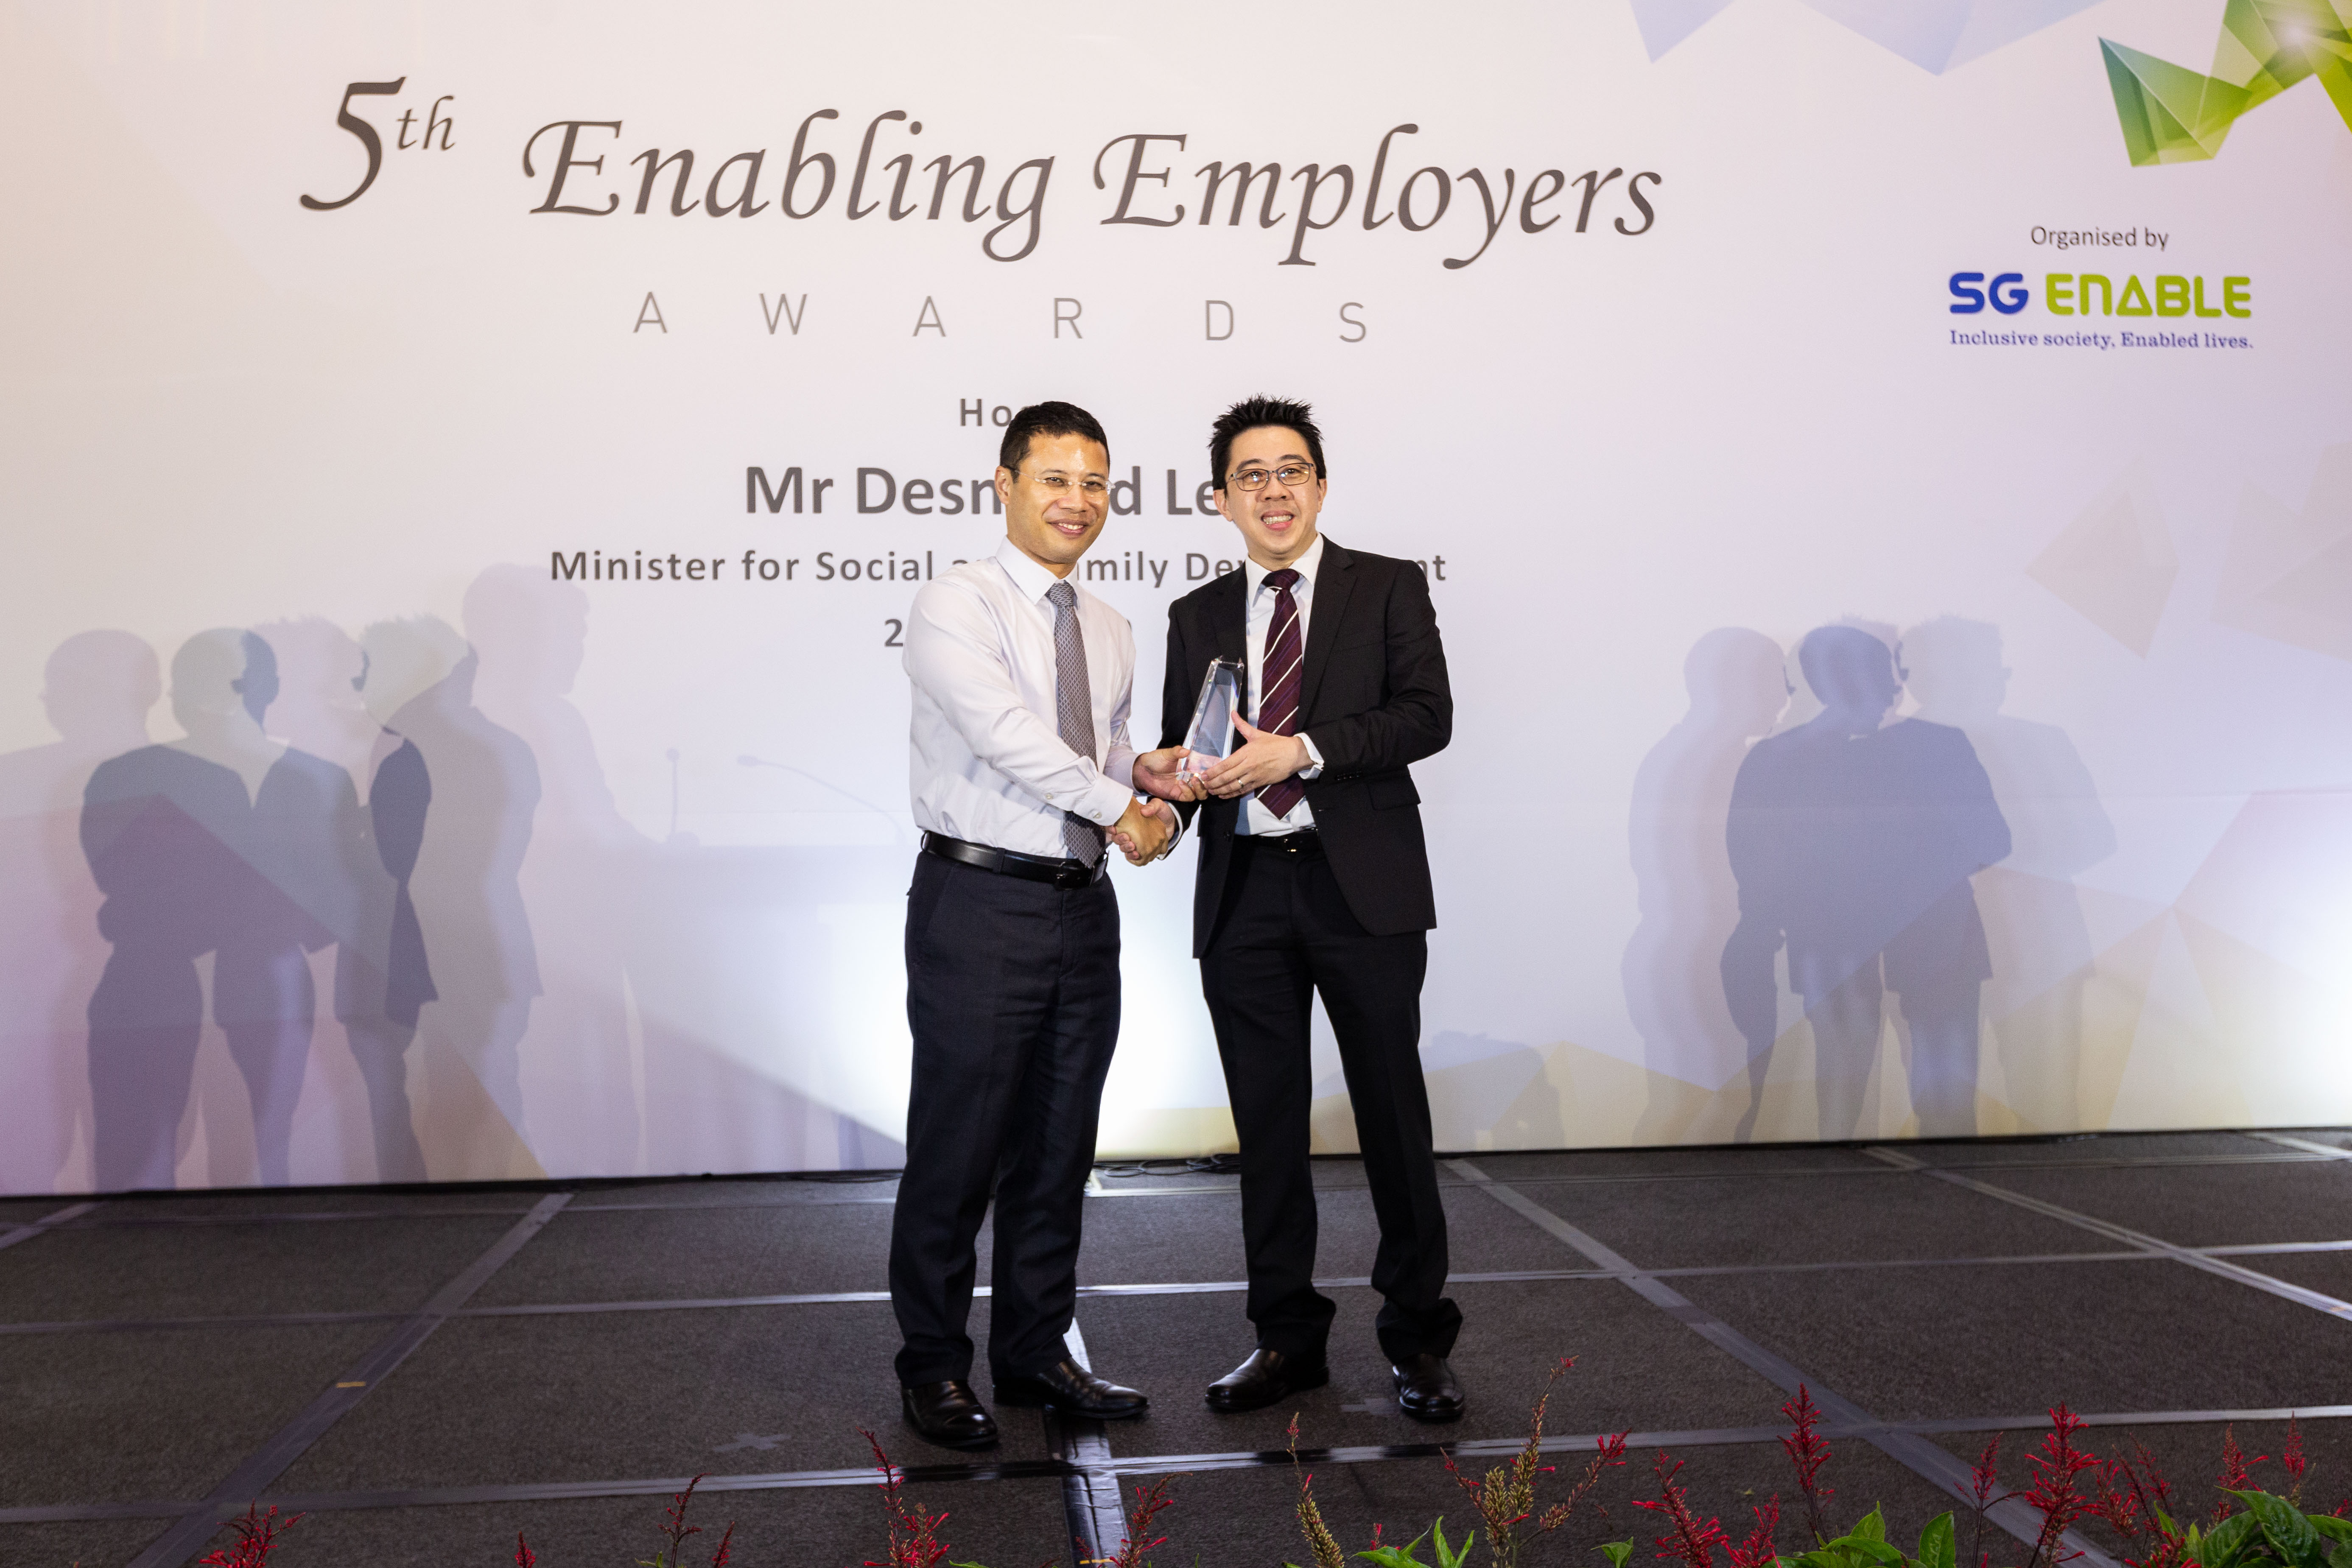 George (right) receiving the Enabling Champion Award at the 5th Enabling Employers Awards from Minister for Social and Family Development Desmond Lee.